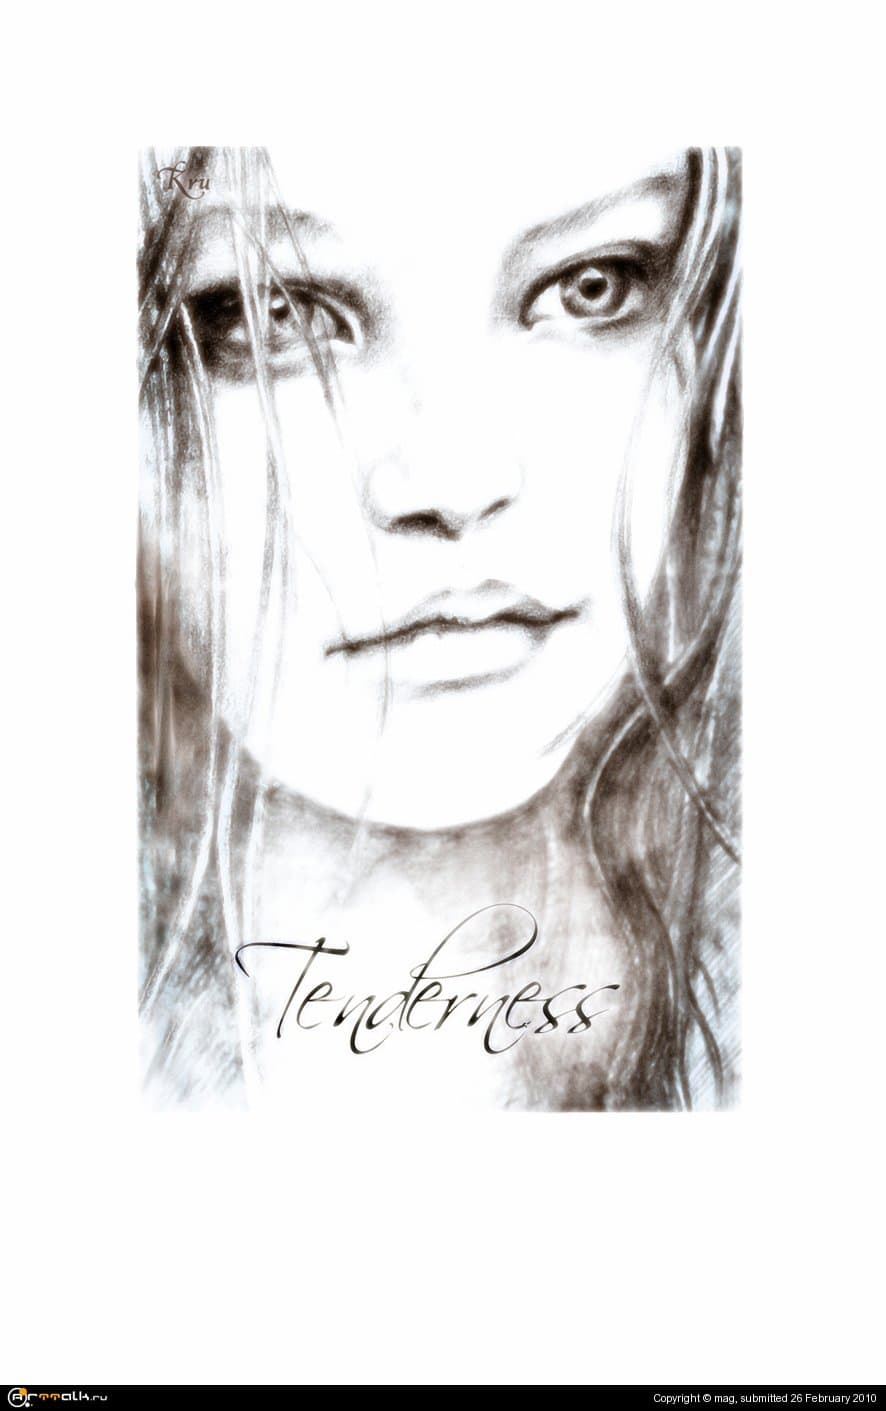 Thenderness